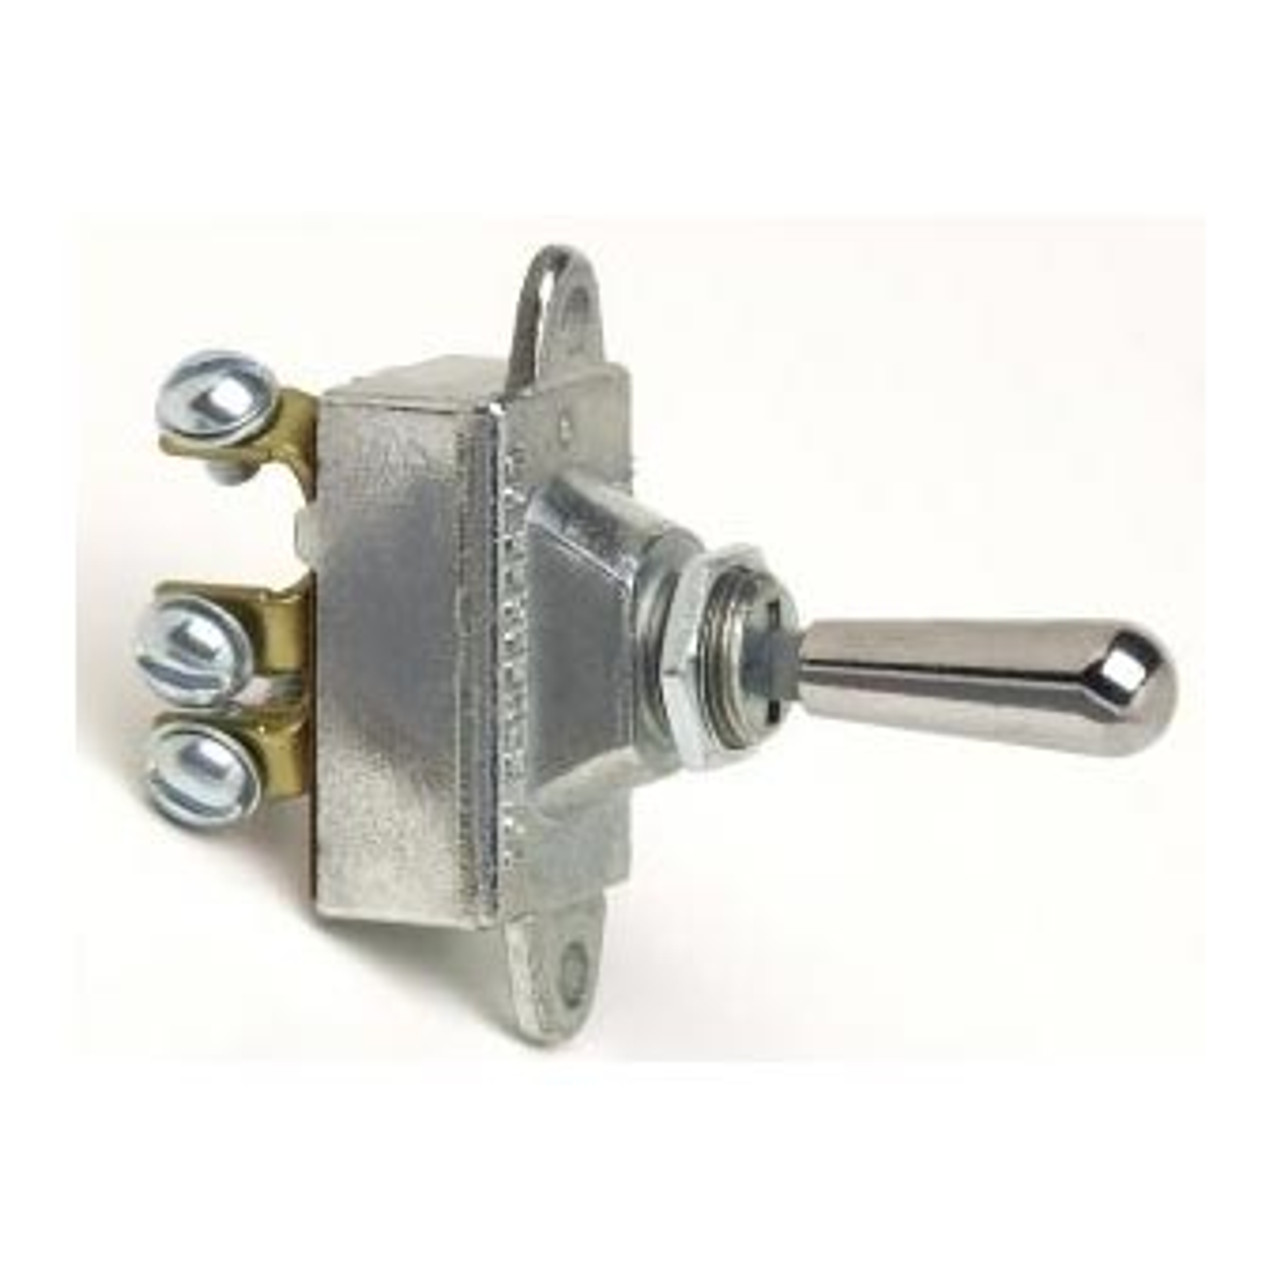 TOGGLE SWIT H/D ON-OFF 4S DPST 30AMP METAL 4 SCREW